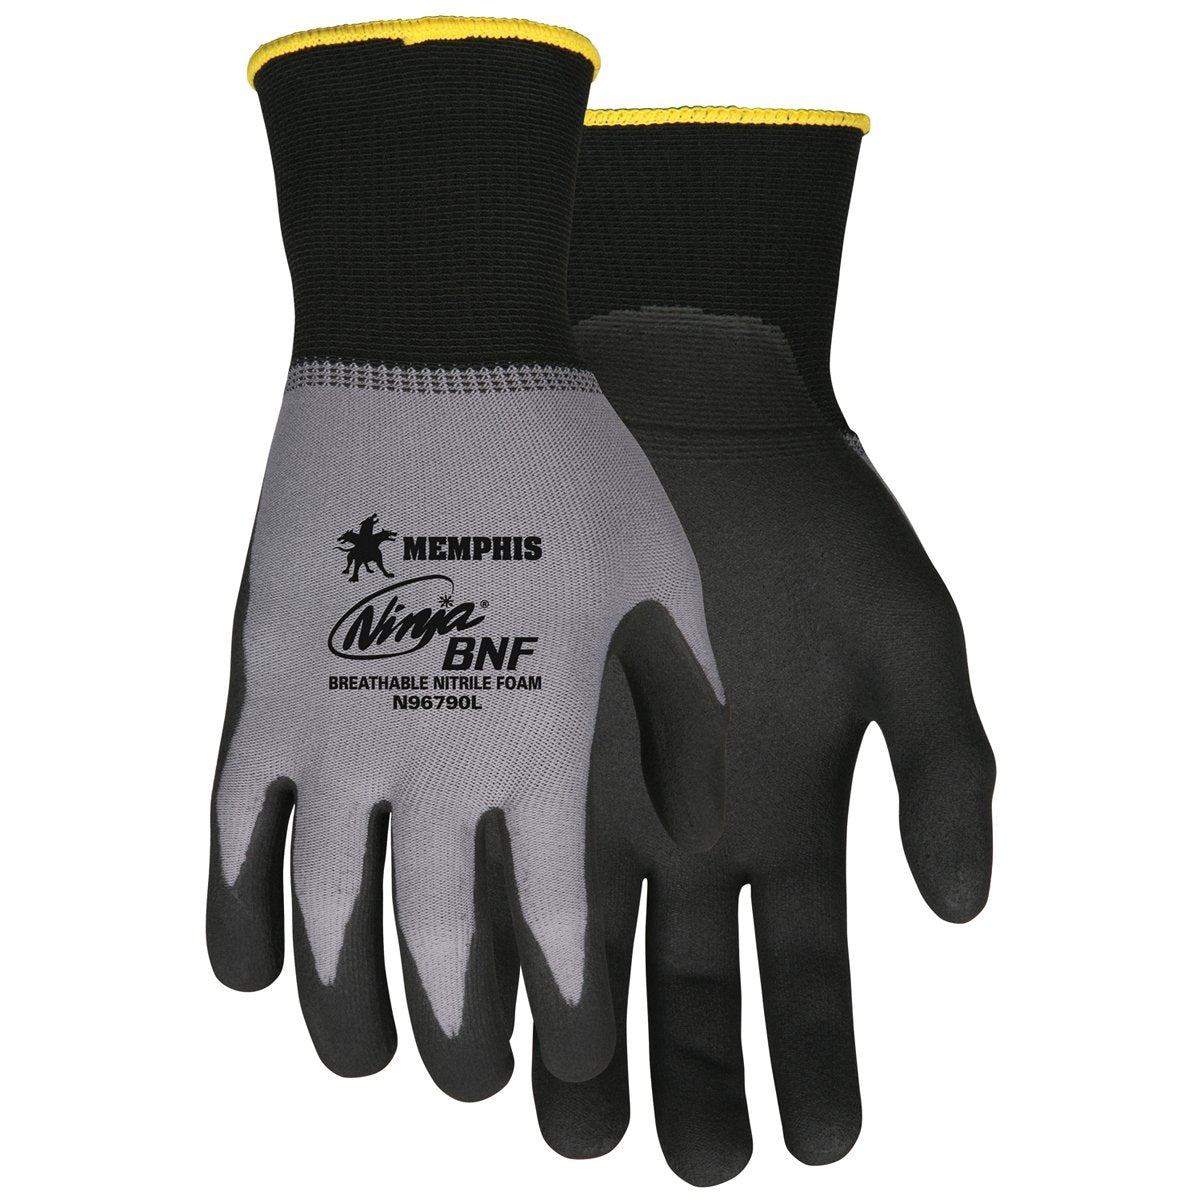 Ninja® BNF Work Gloves 15 Gauge Nylon / Spandex Shell NFT® Coated Palm and Fingertips